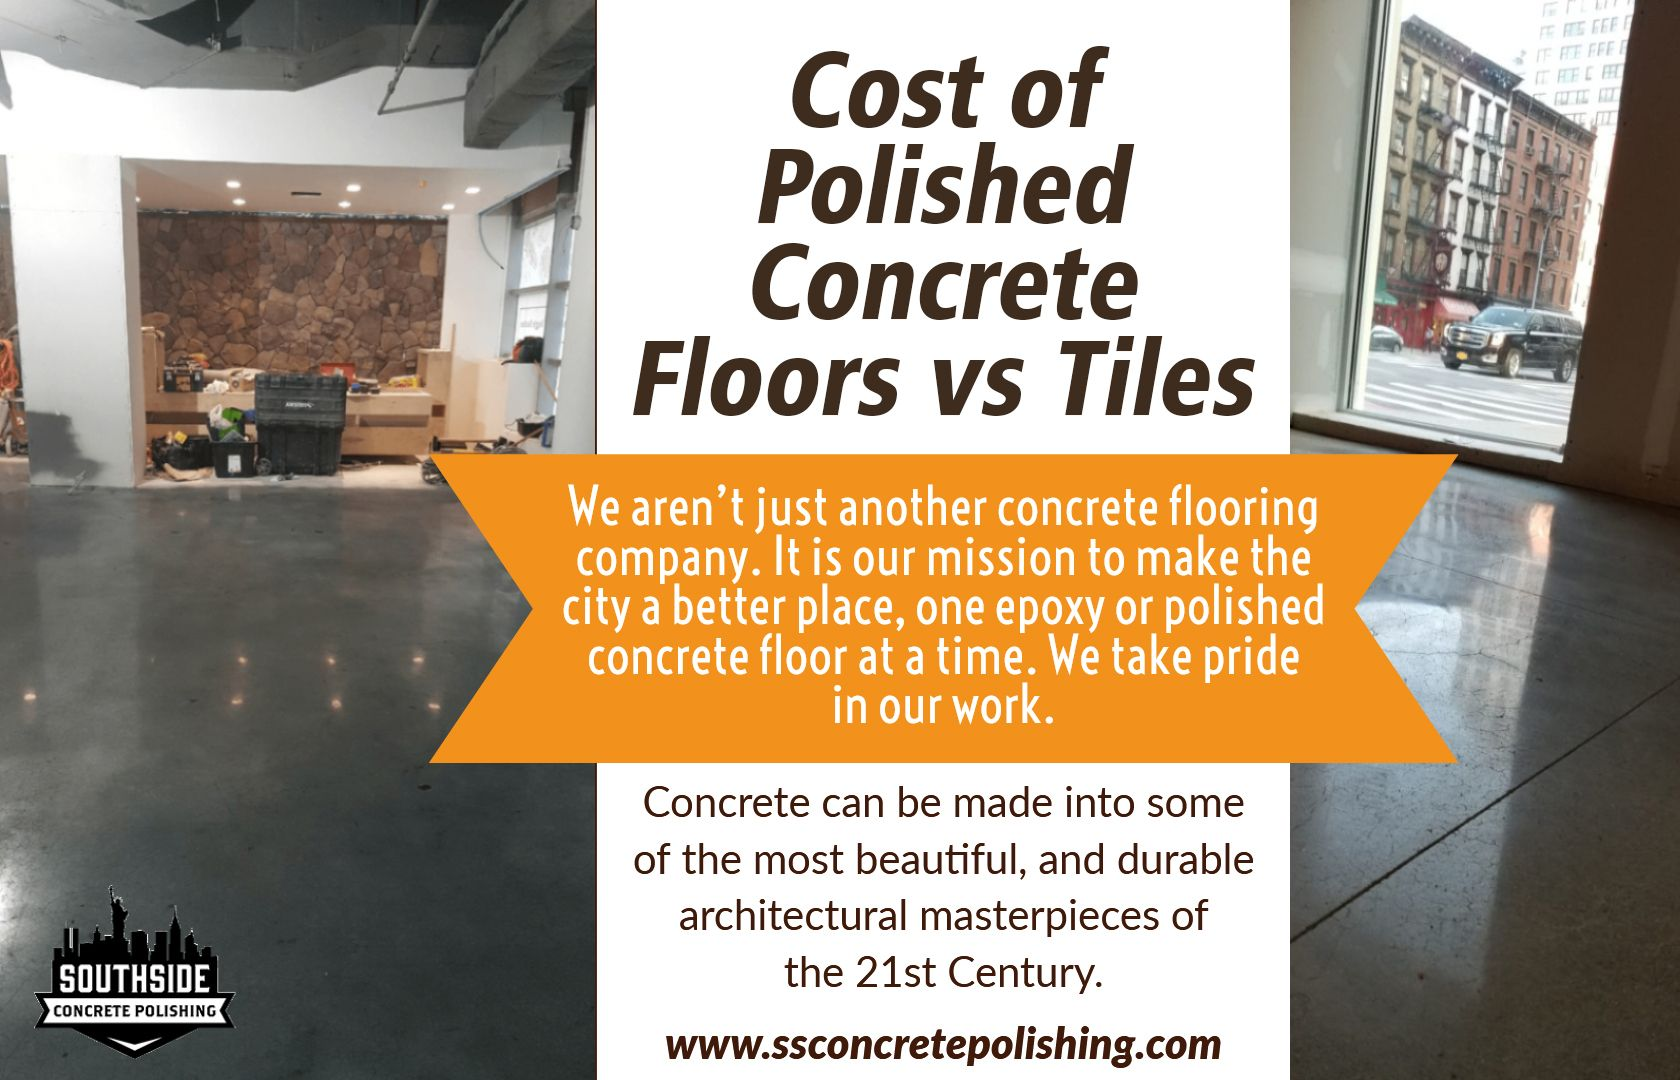 Cost Of Polished Concrete Floors Vs